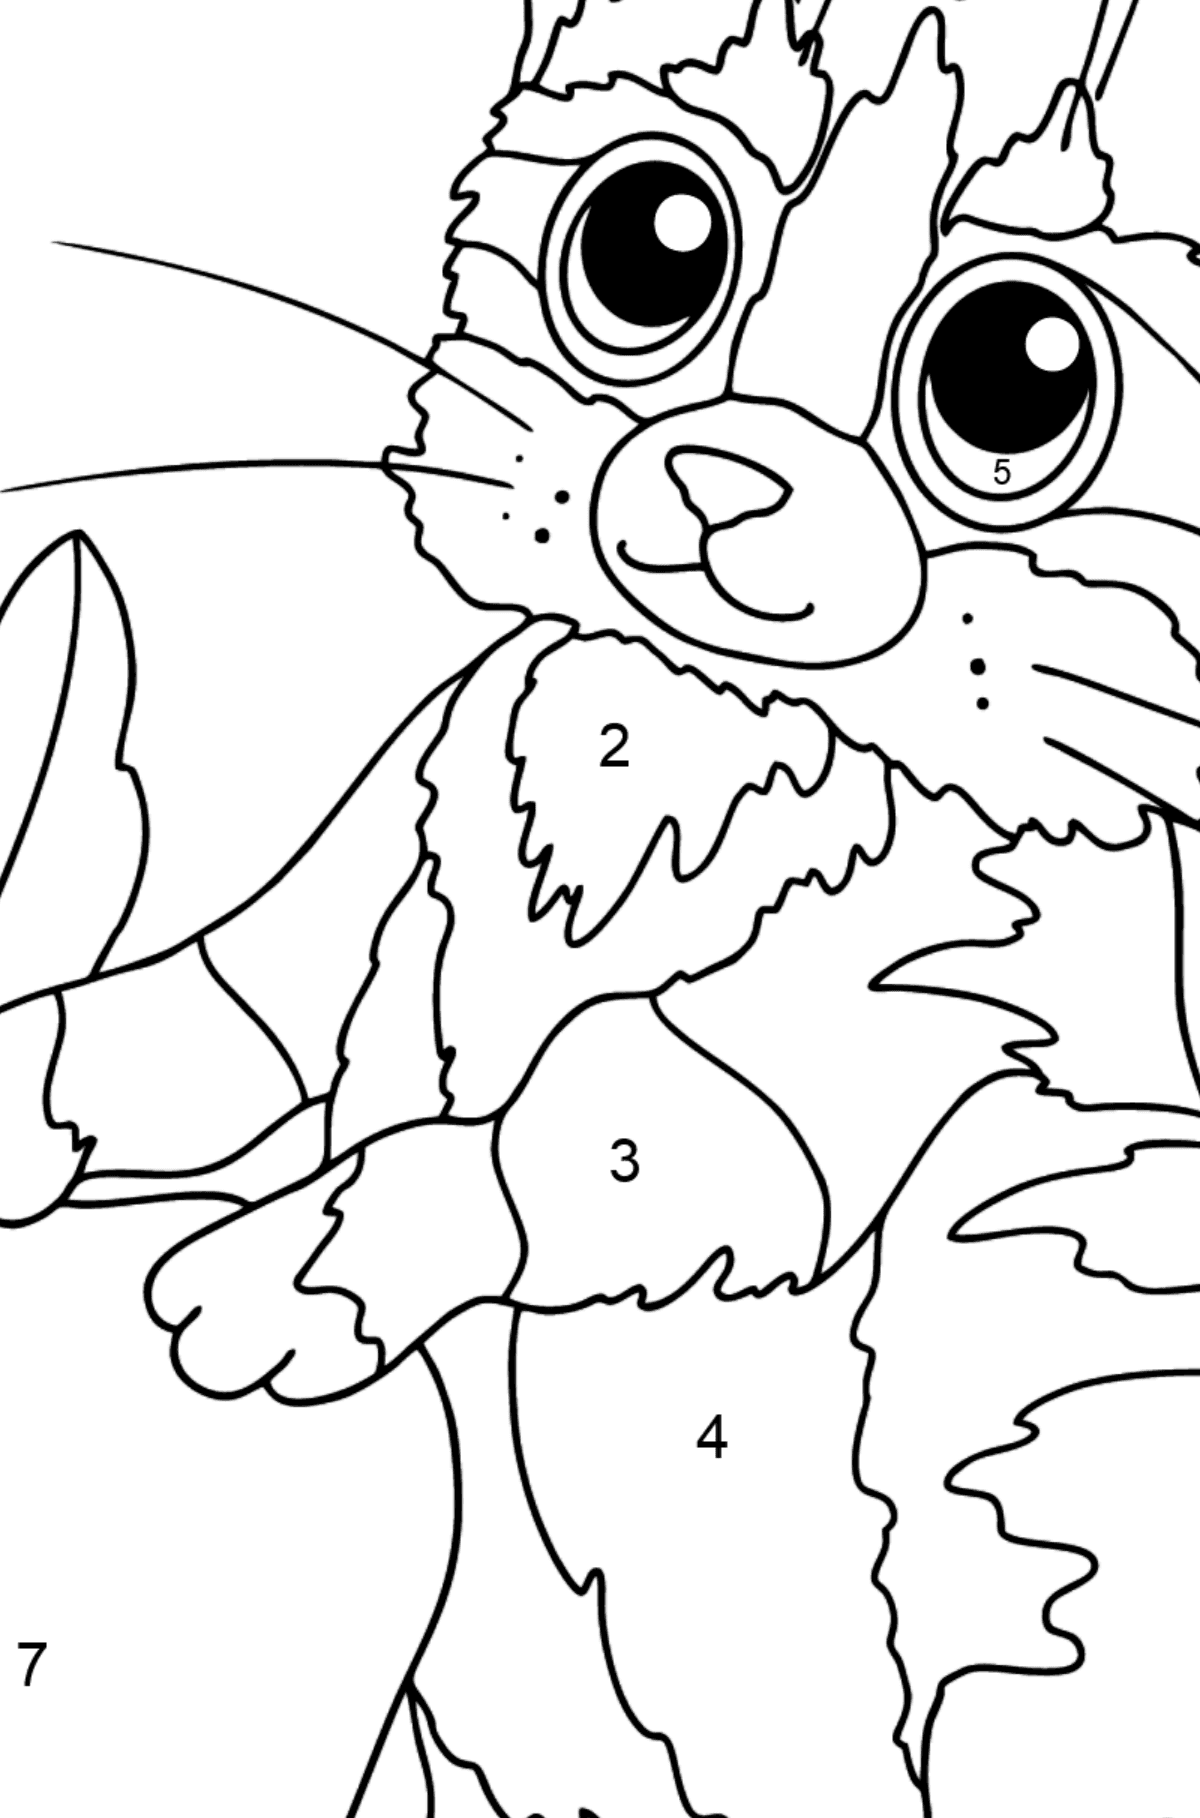 A Kitten is Playing with an Apple - Stampy cat coloring page - Coloring by Numbers for Kids